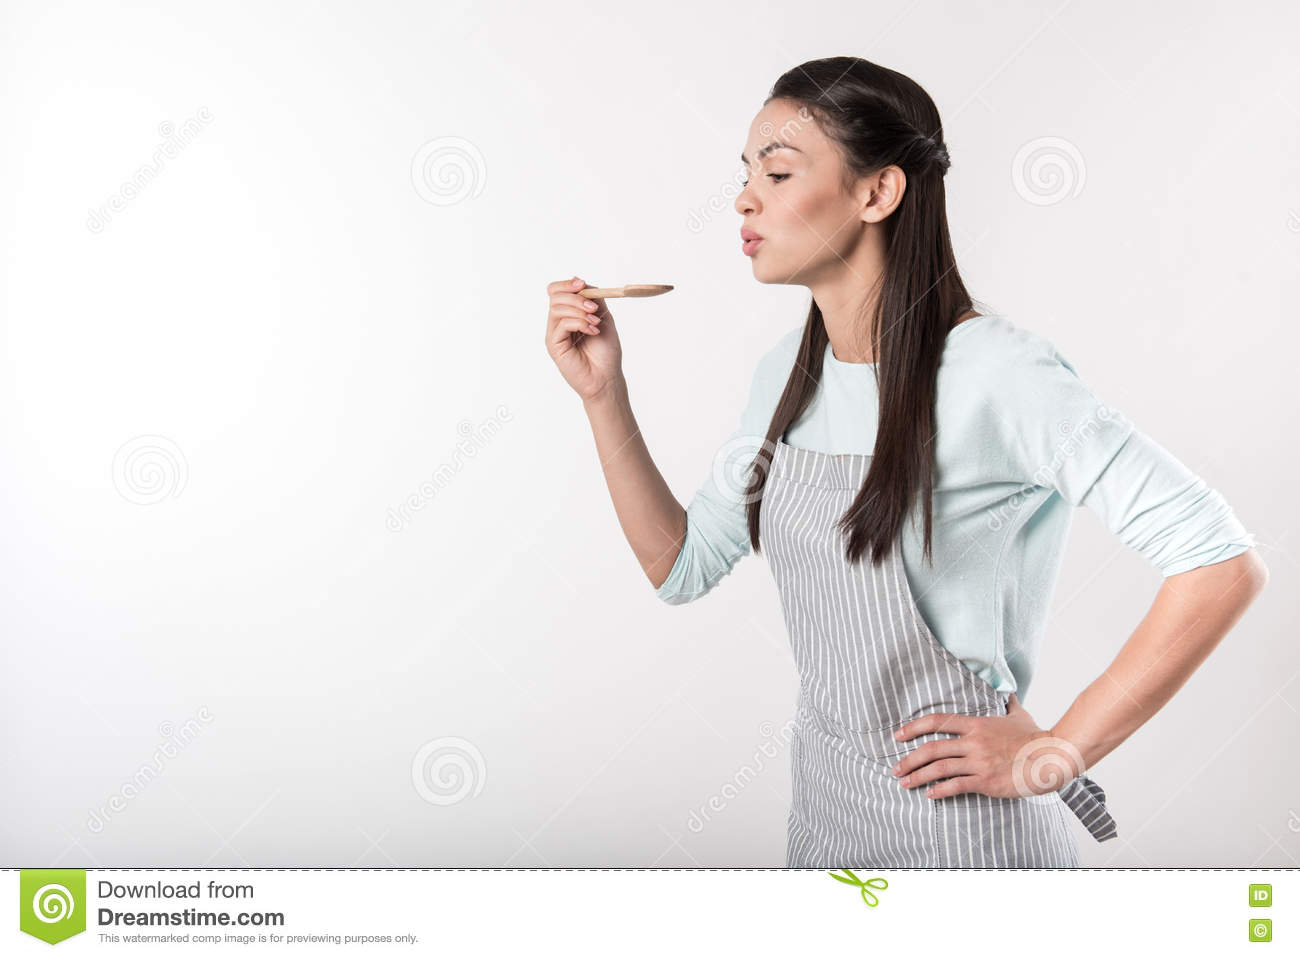 Positive woman involved in cooking